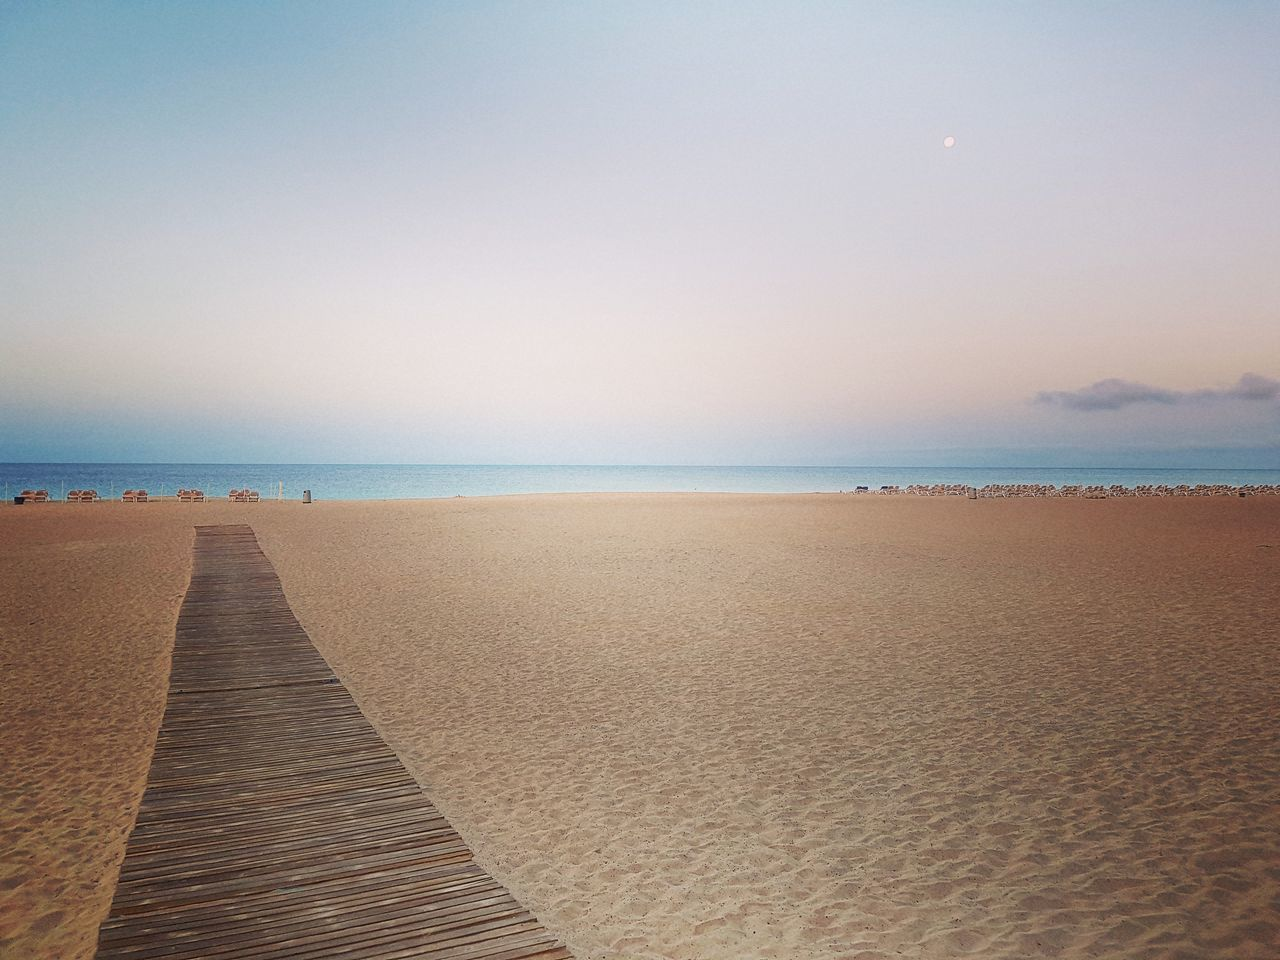 Beach Sand Sea Outdoors Horizon Over Water Water Sky Tranquility Vacations Travel Destinations Day Summer Sand Dune Nature Scenics No People Beauty In Nature Wave Moonset